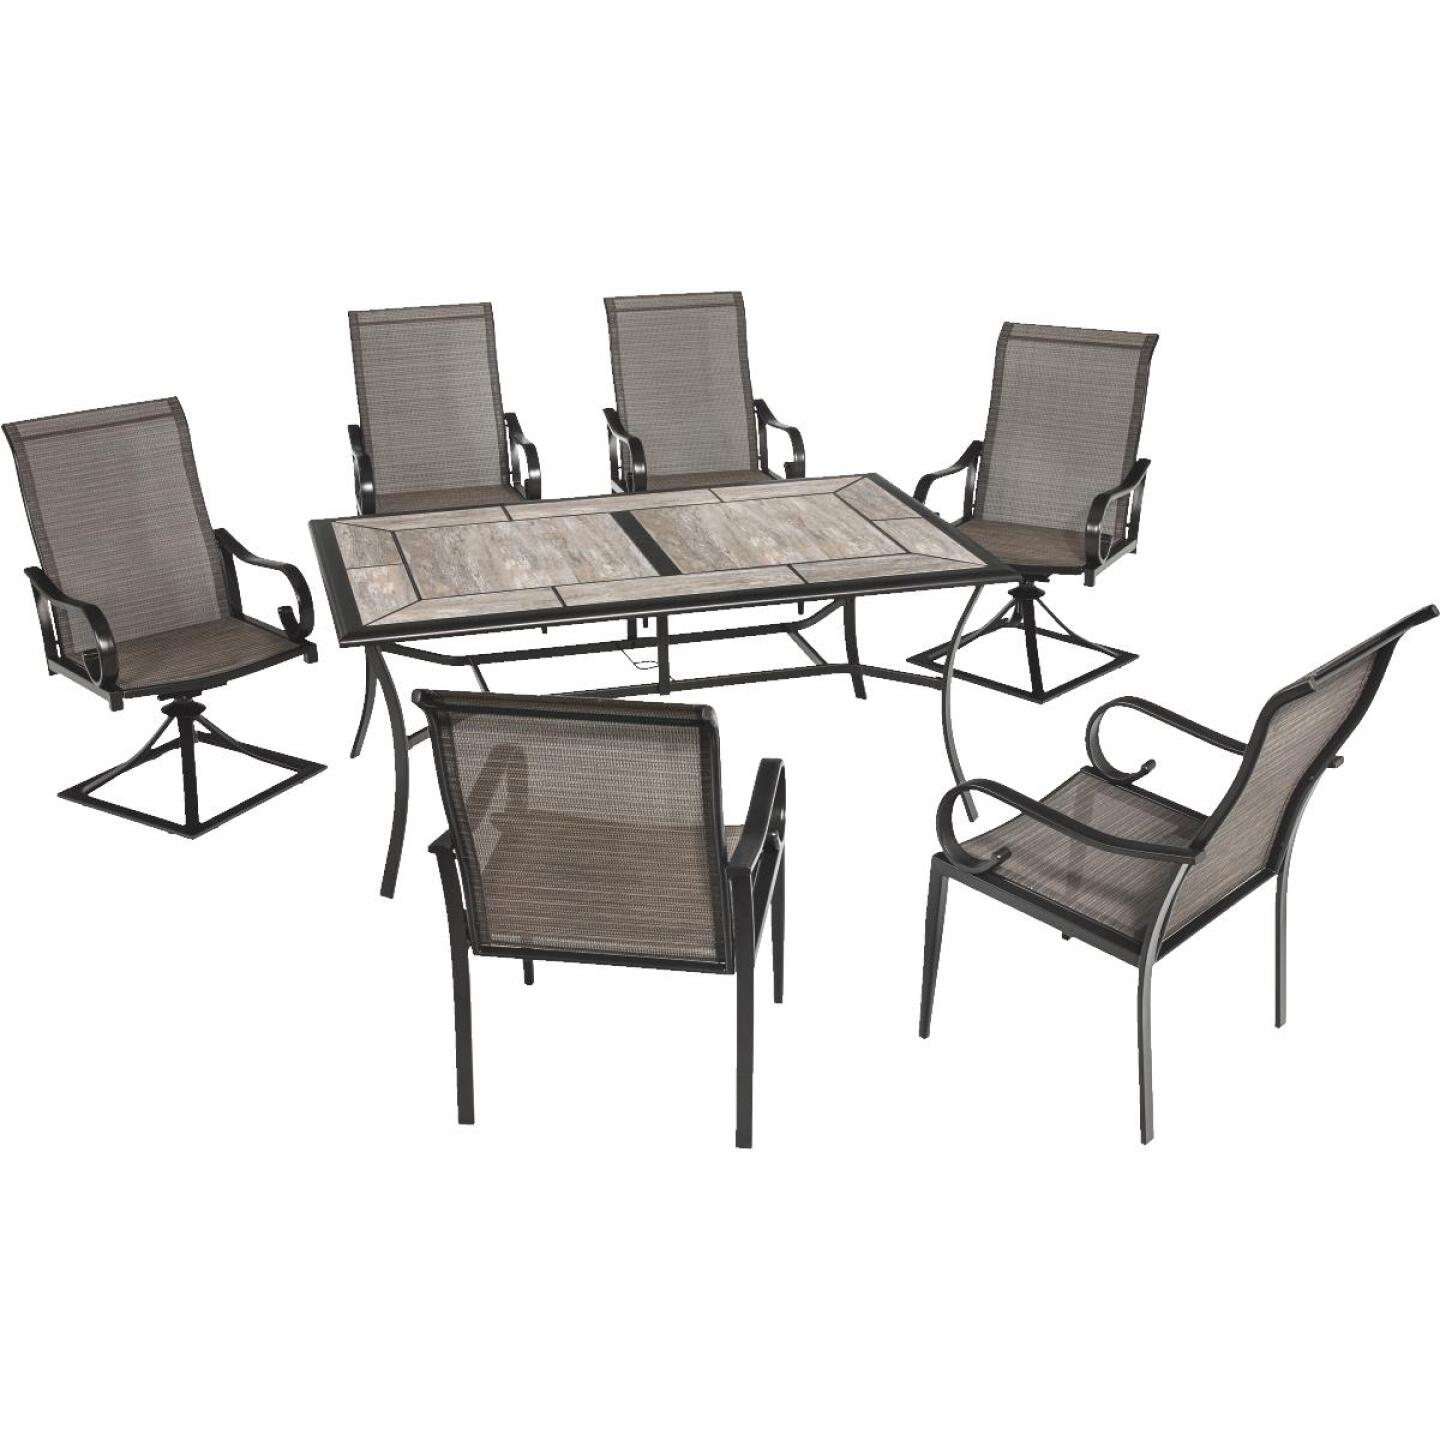 Outdoor Expressions Berkshire 7-Piece Dining Set Image 174